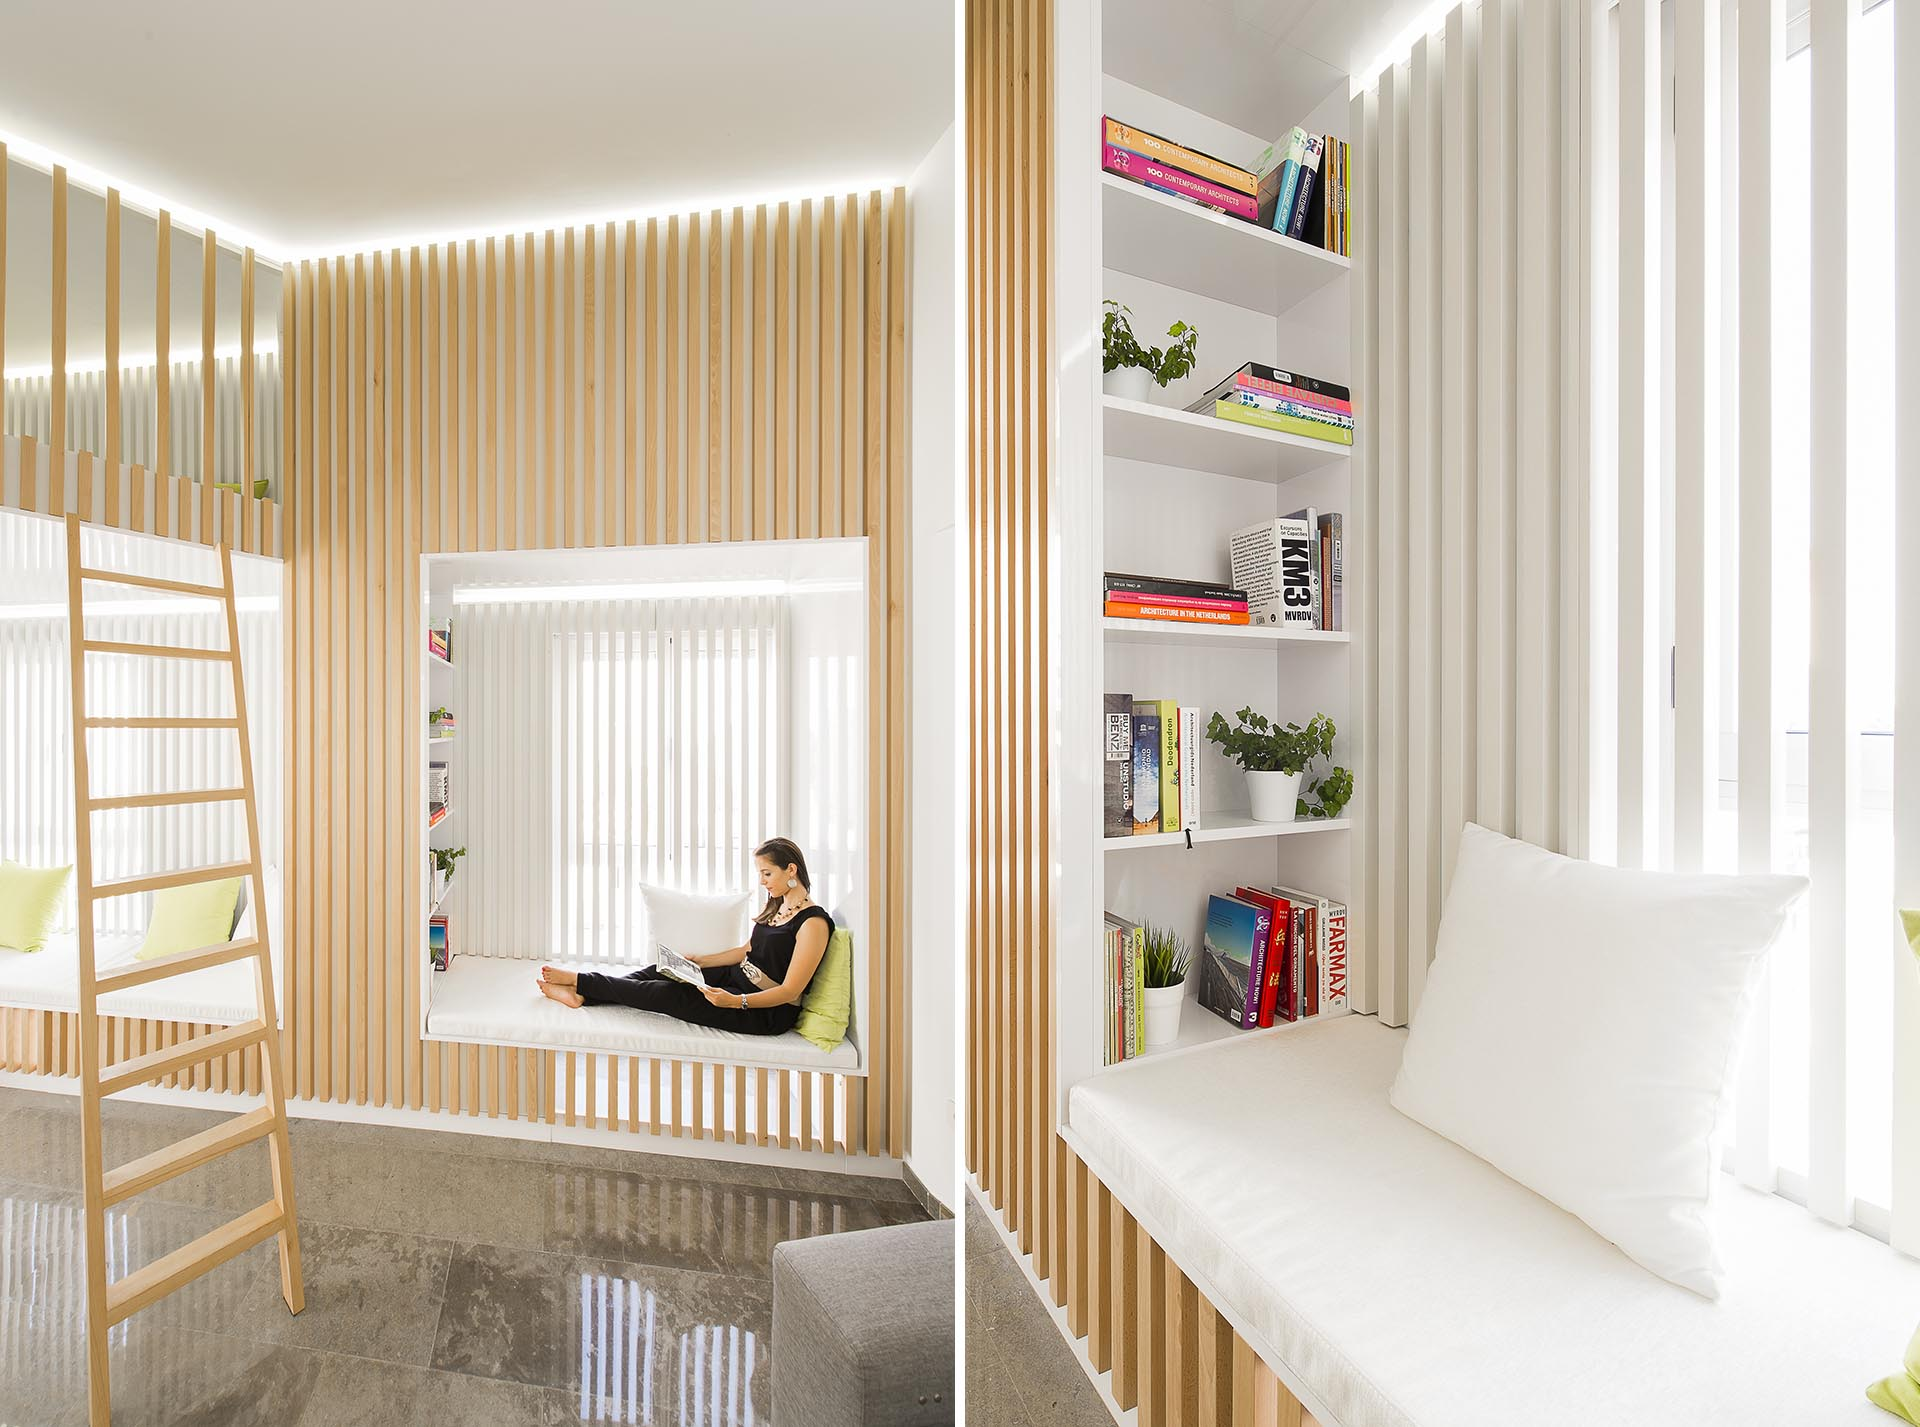 A window seat with a bookshelf that are surrounded by wood slats.